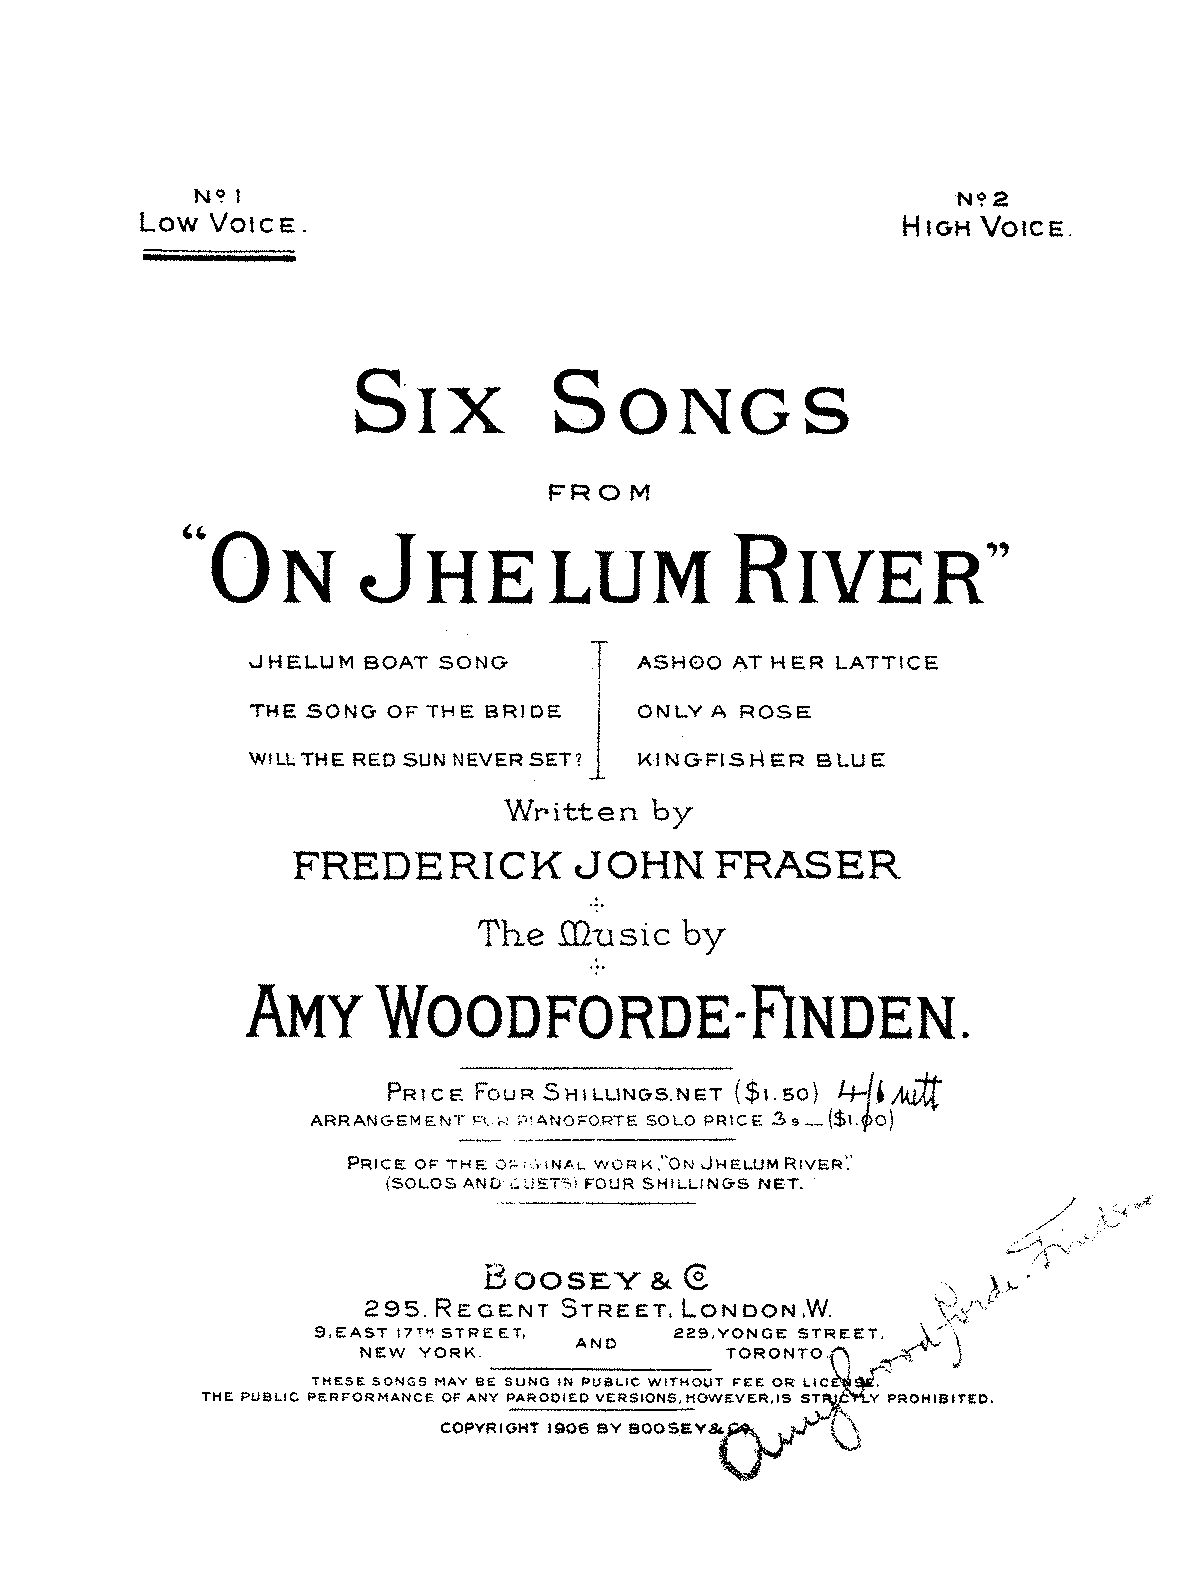 PMLP352816-Woodforde-Finden 6 Songs from 'On Jhelum River'.pdf